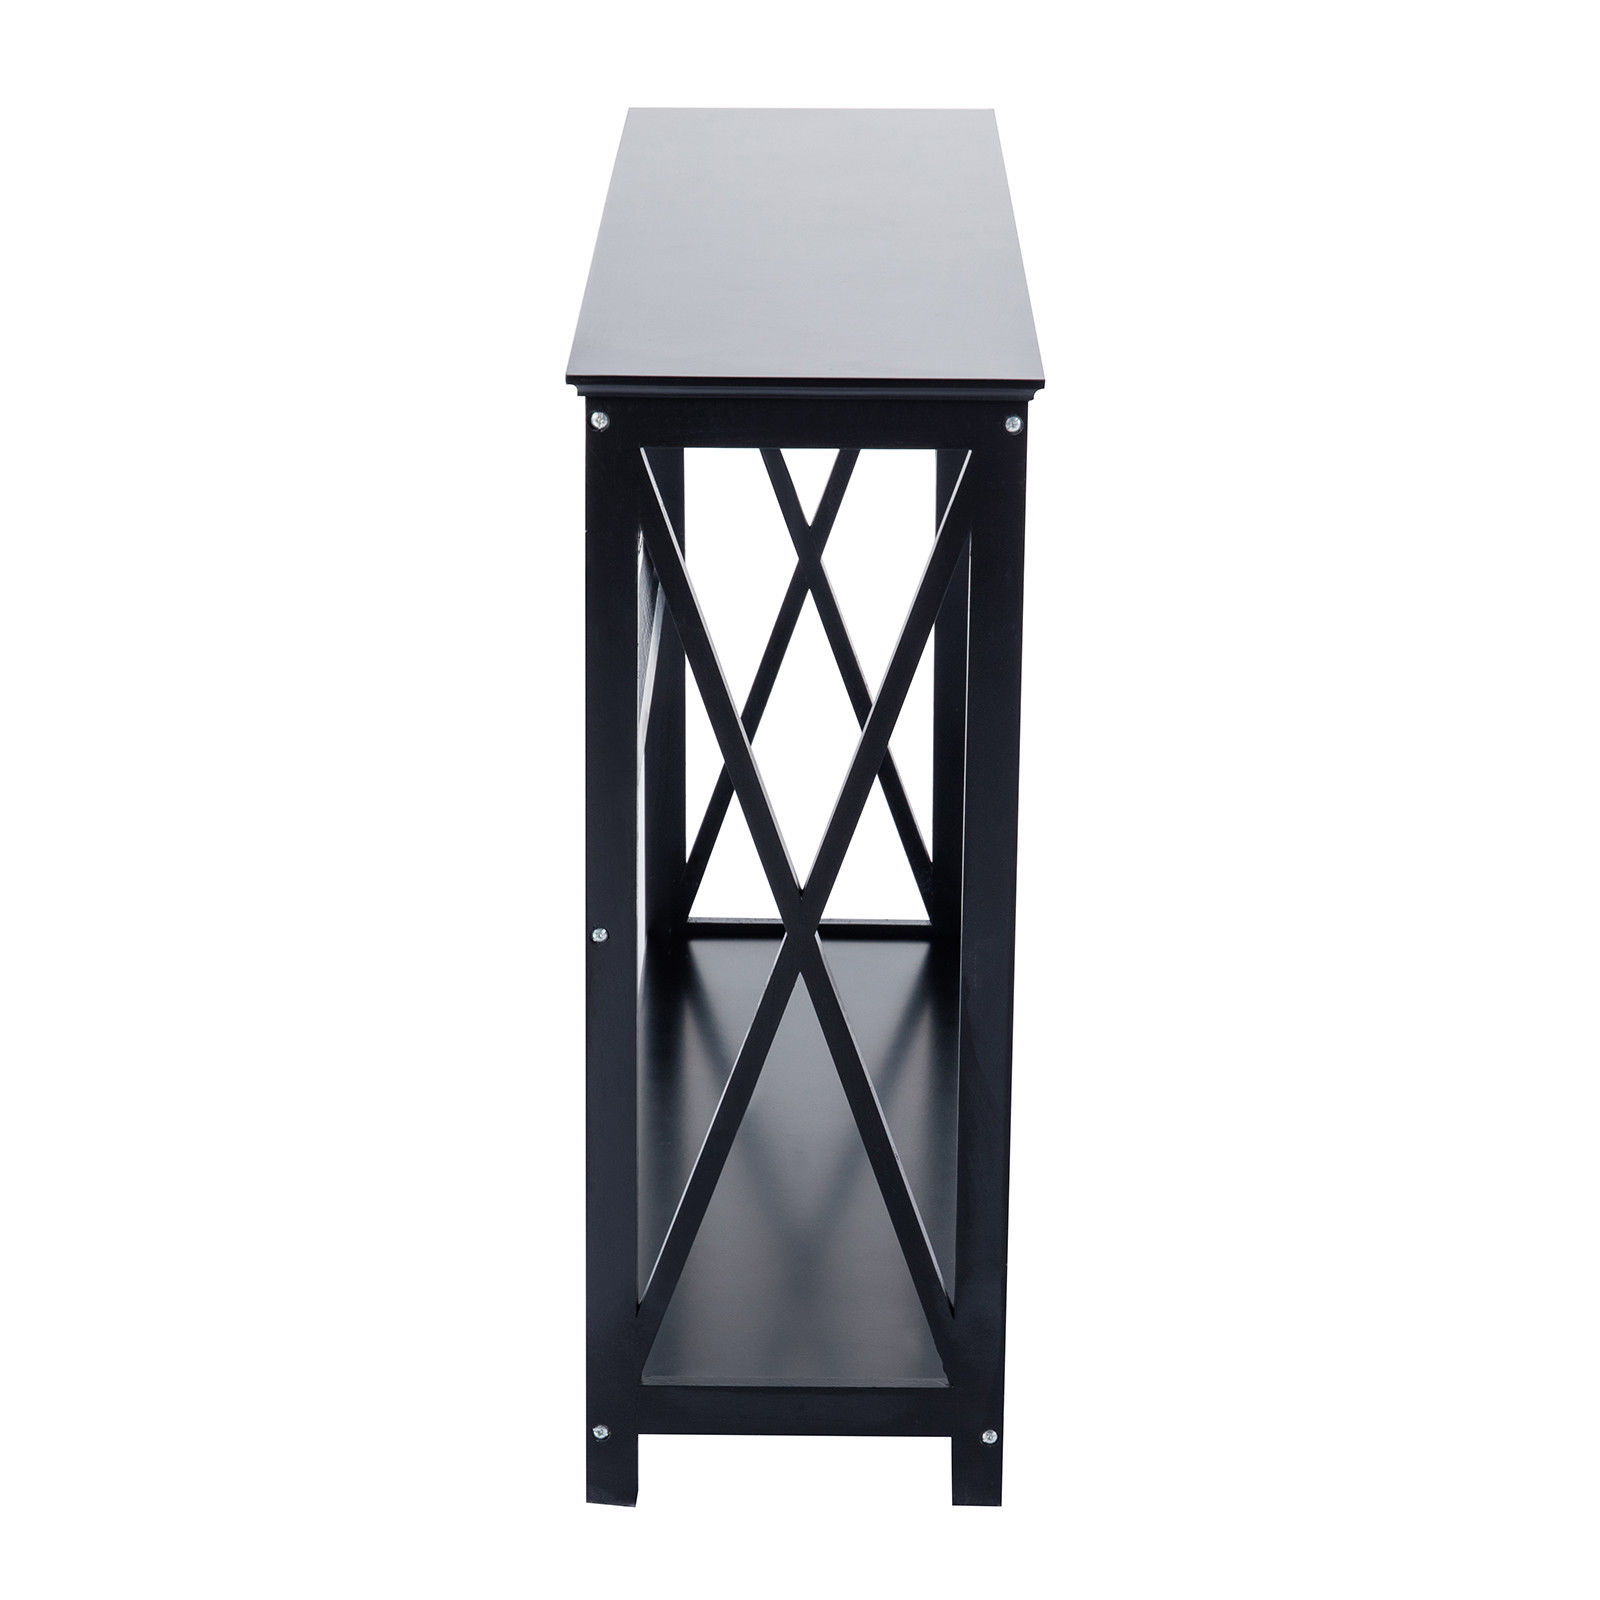 tiers black console table accent tables with storage shelf hallway drawer product description grill brush furniture winnipeg cherry lamp round dale tiffany crystal lamps glass